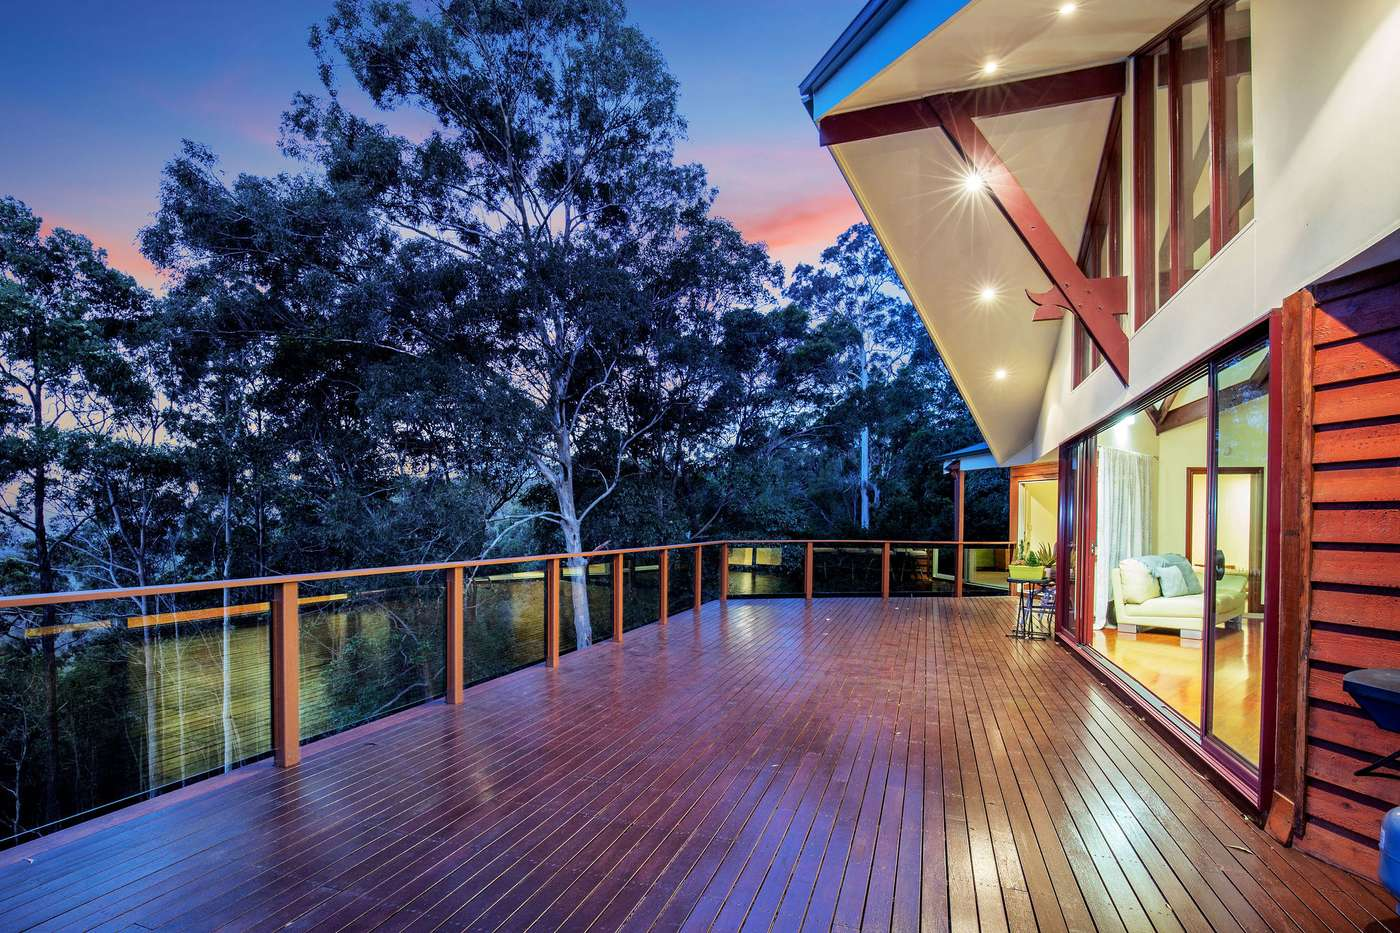 Main view of Homely house listing, 7 Tabor Drive, Tamborine Mountain, QLD 4272